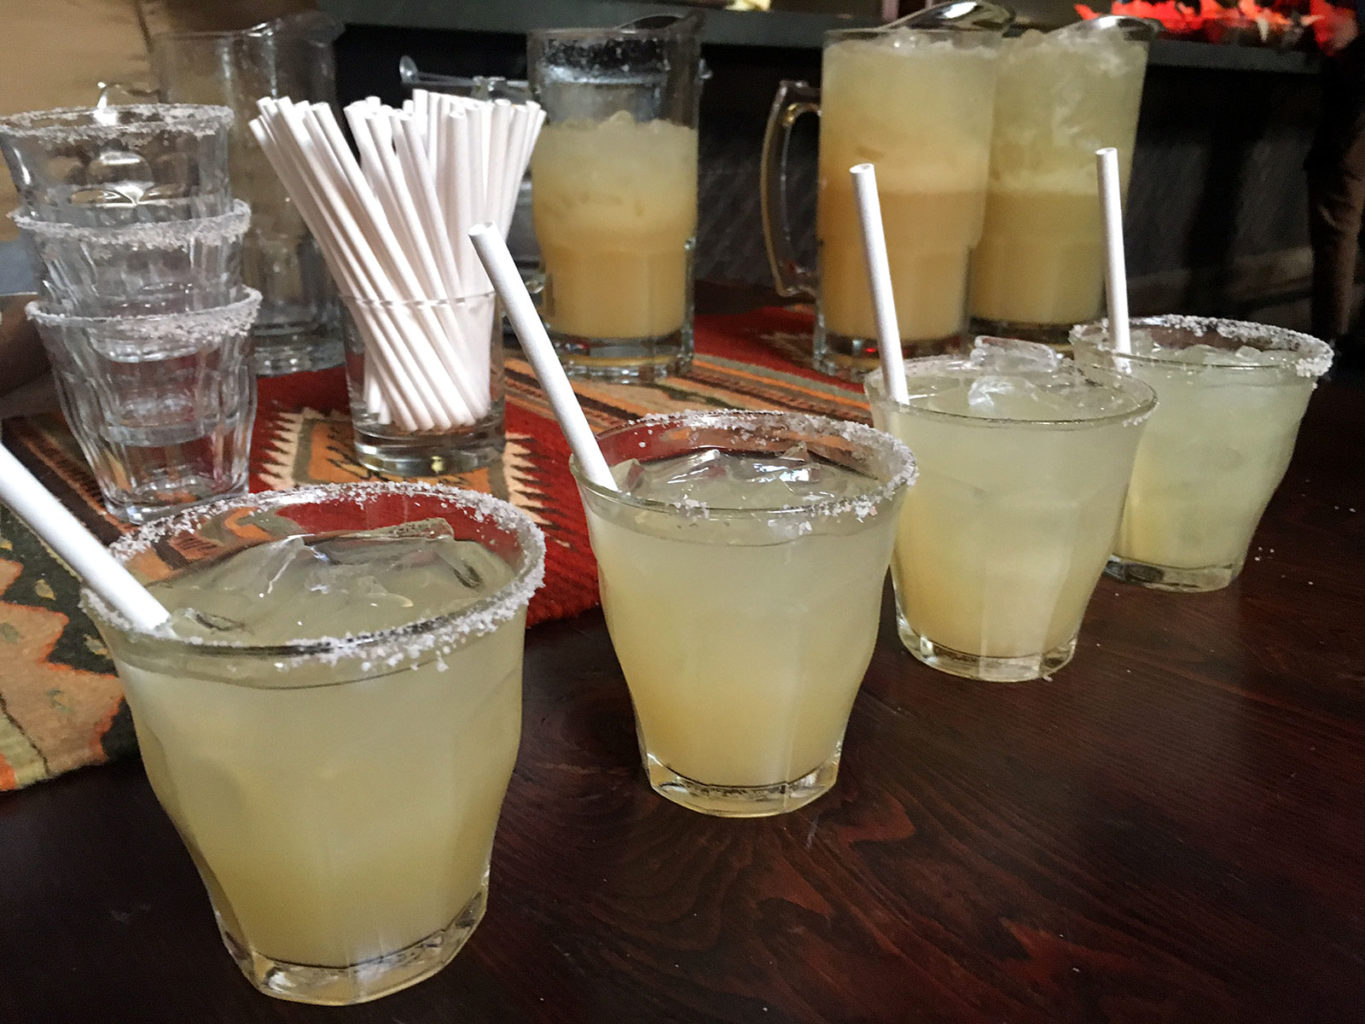 West of Pecos, in San Francisco's Mission District, serves margaritas with paper straws as part of its commitment to move away from unnecessary plastic products. (Robyn Purchia/Special to S.F. Examiner)